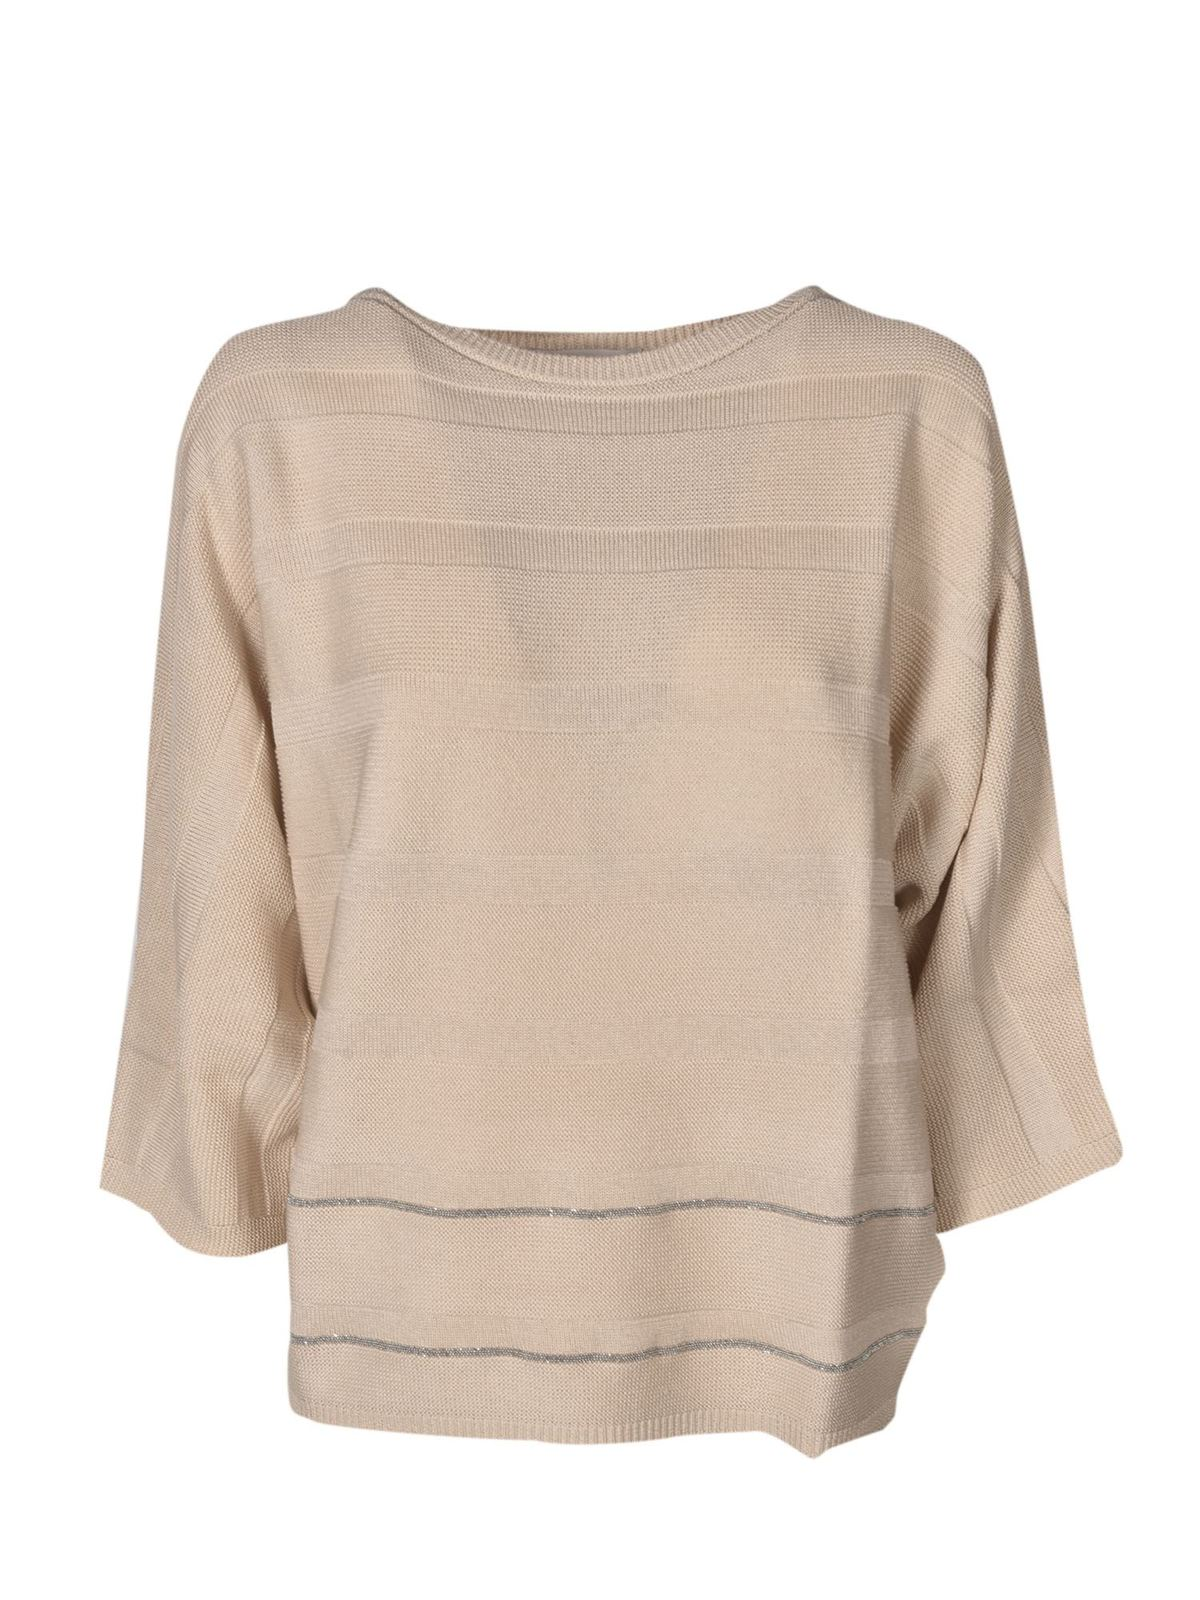 Fabiana Filippi LAME DETAIL SWEATER IN BEIGE